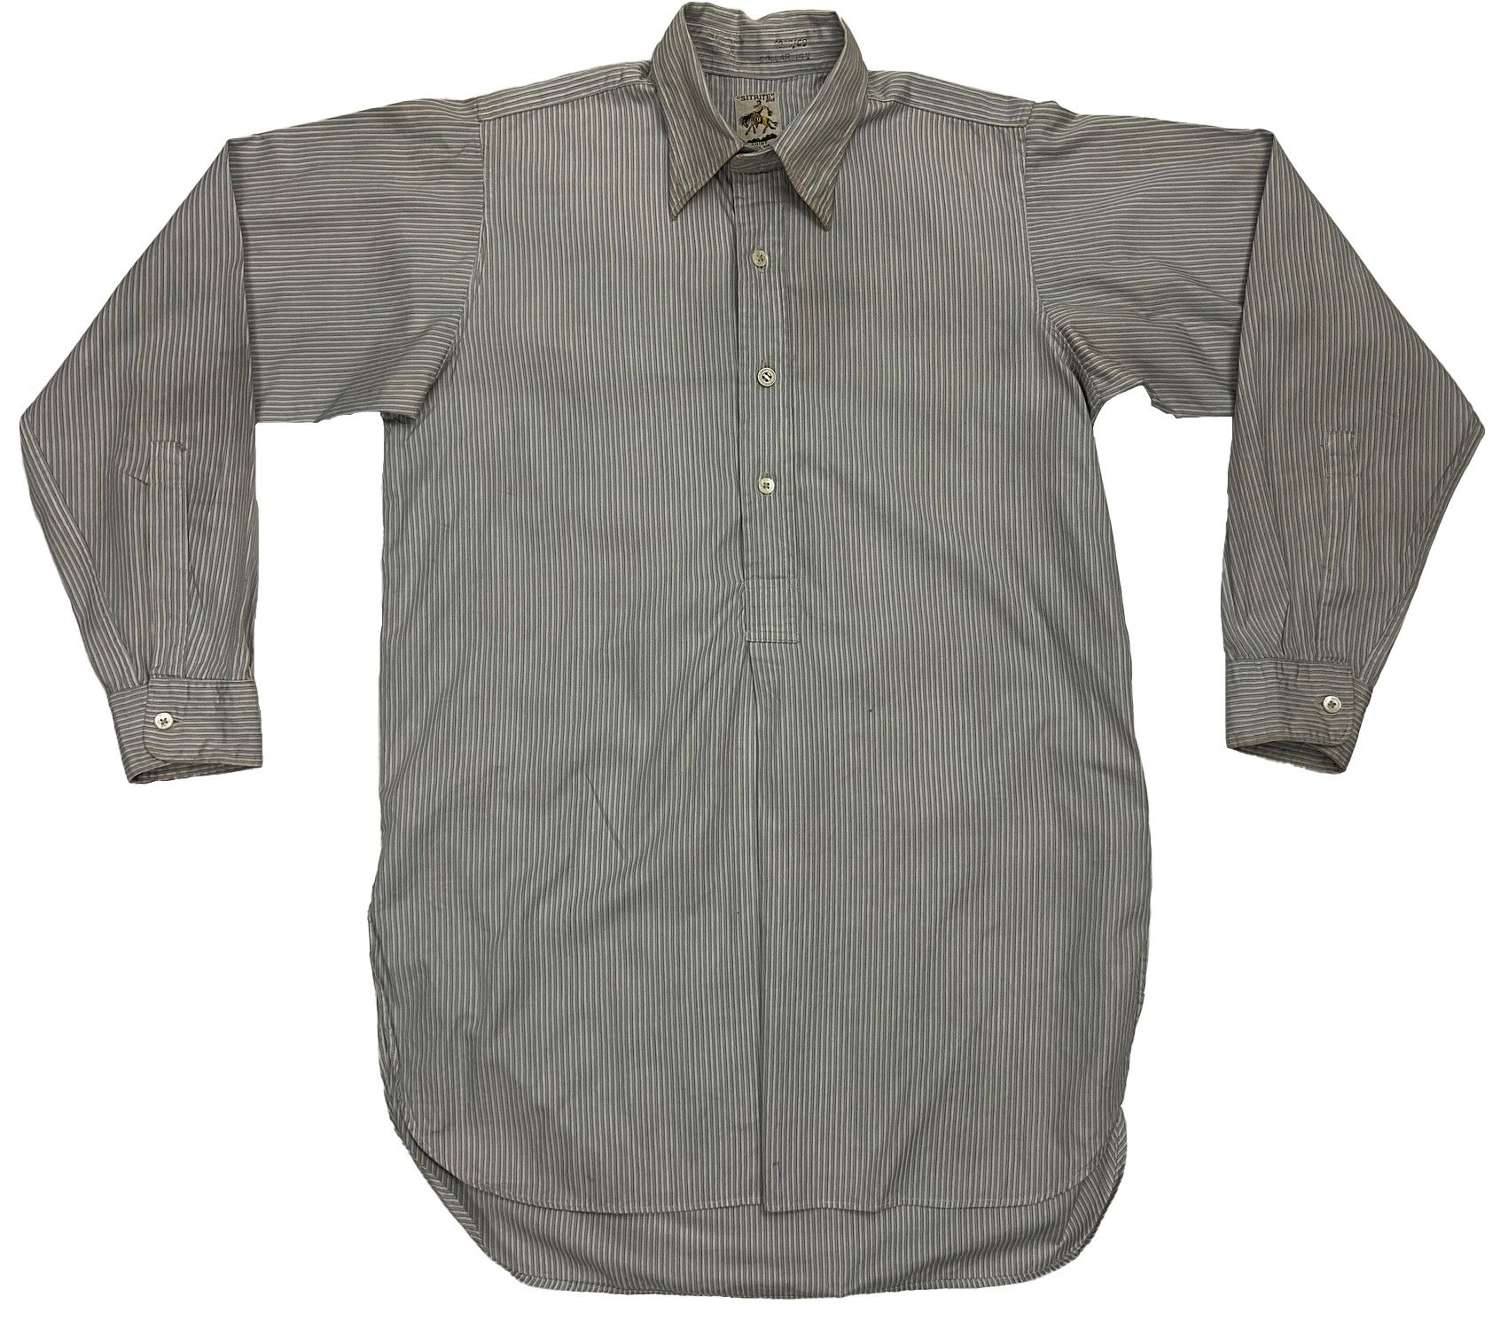 Original 1940s Men's Collared Shirt by 'Sitrite' (2)